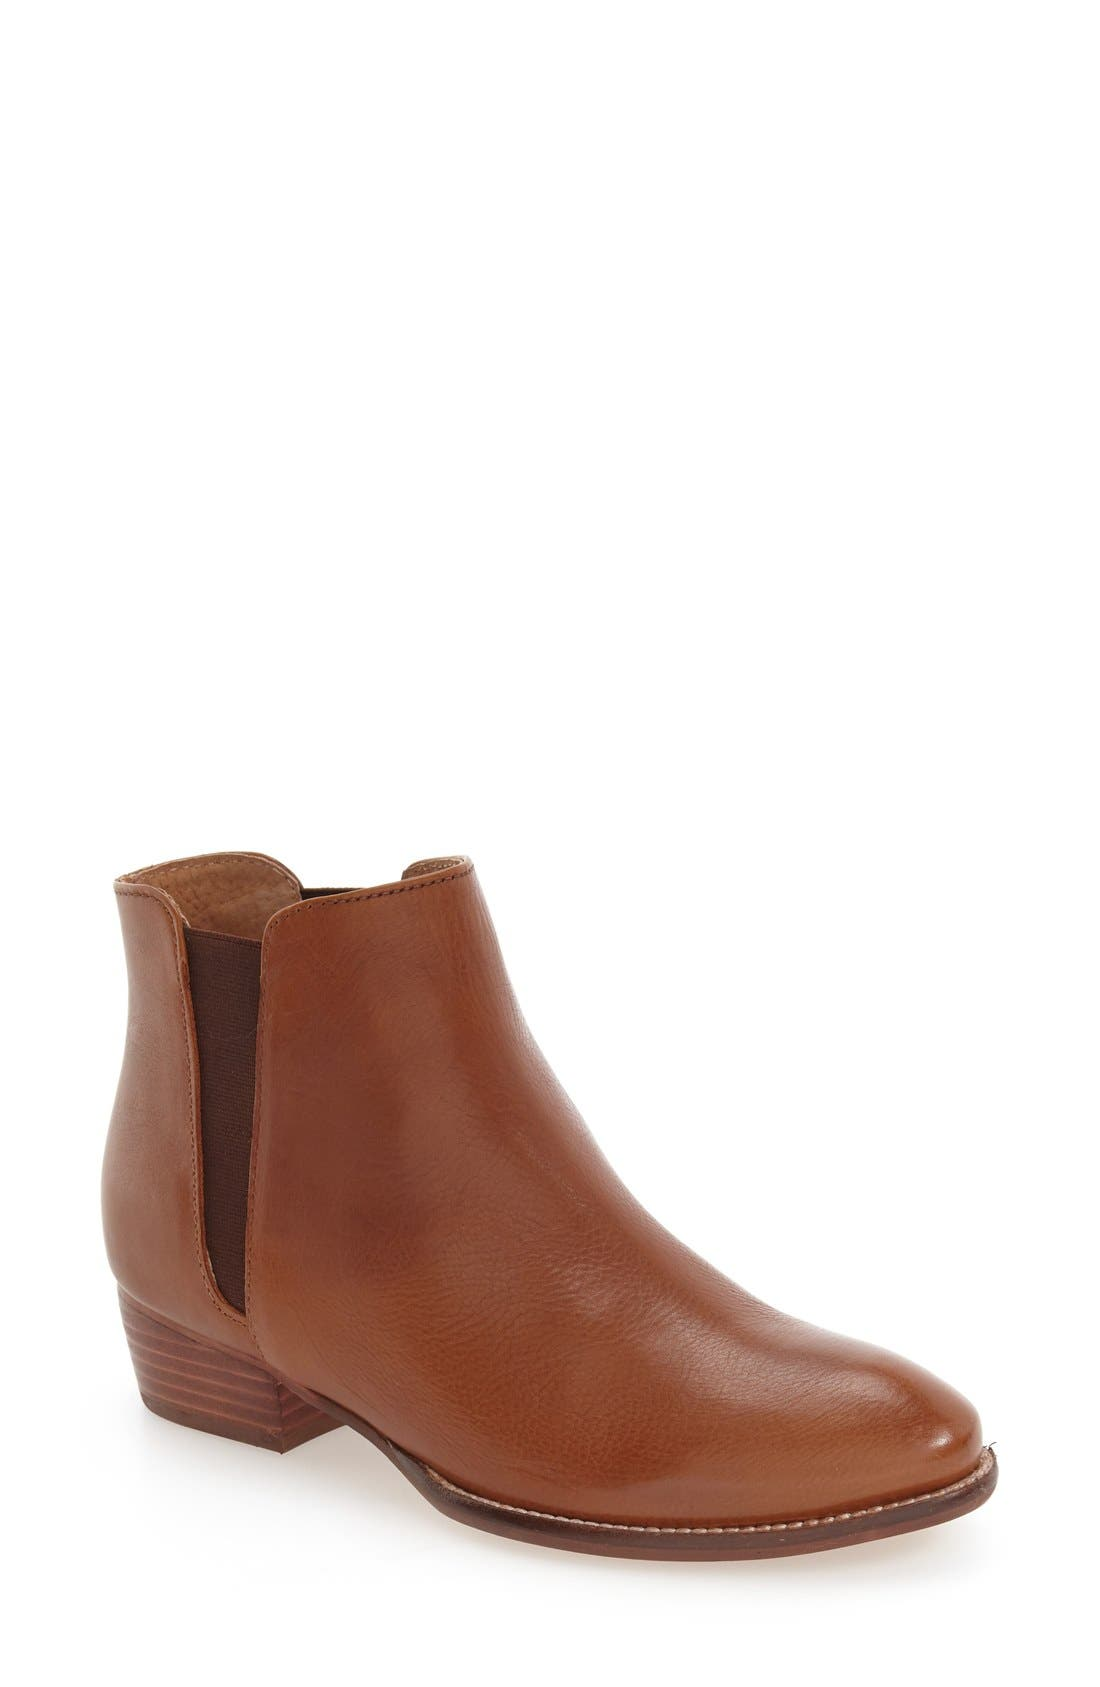 Main Image - Seychelles 'Wake' Chelsea Boot (Women)